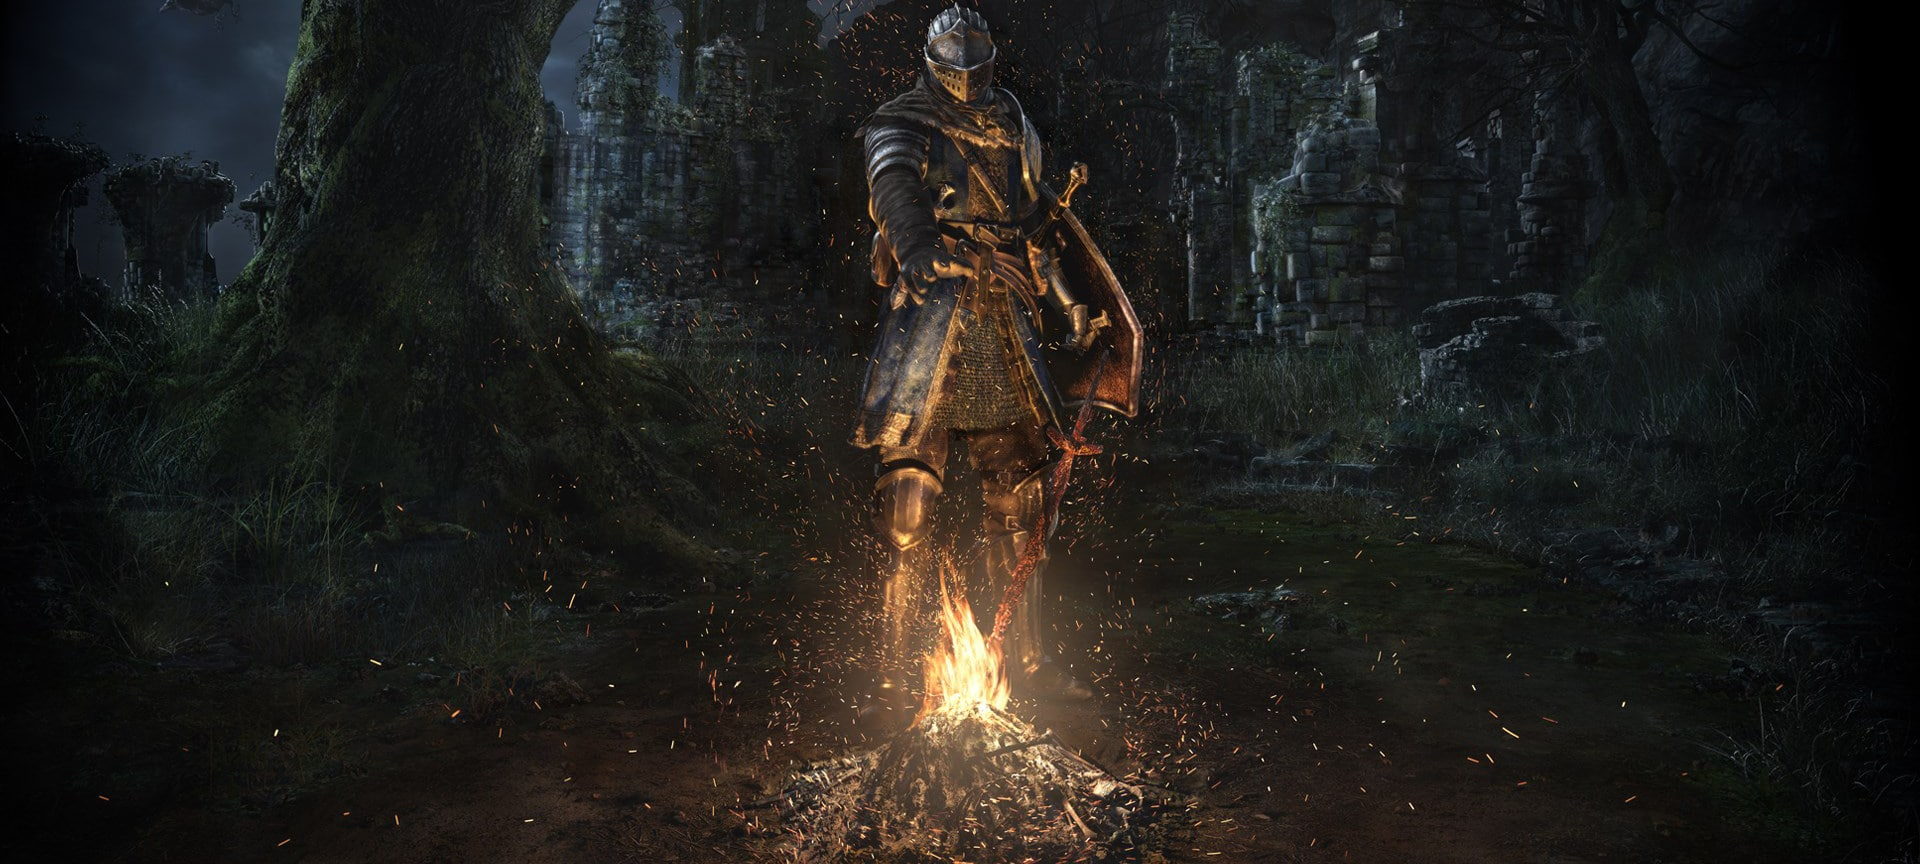 [REPOST] FEATURE: PORT MASTERS VIRTUOS ON BRINGING DARK SOULS: REMASTERED TO SWITCH AND FUTURE PROJECTS